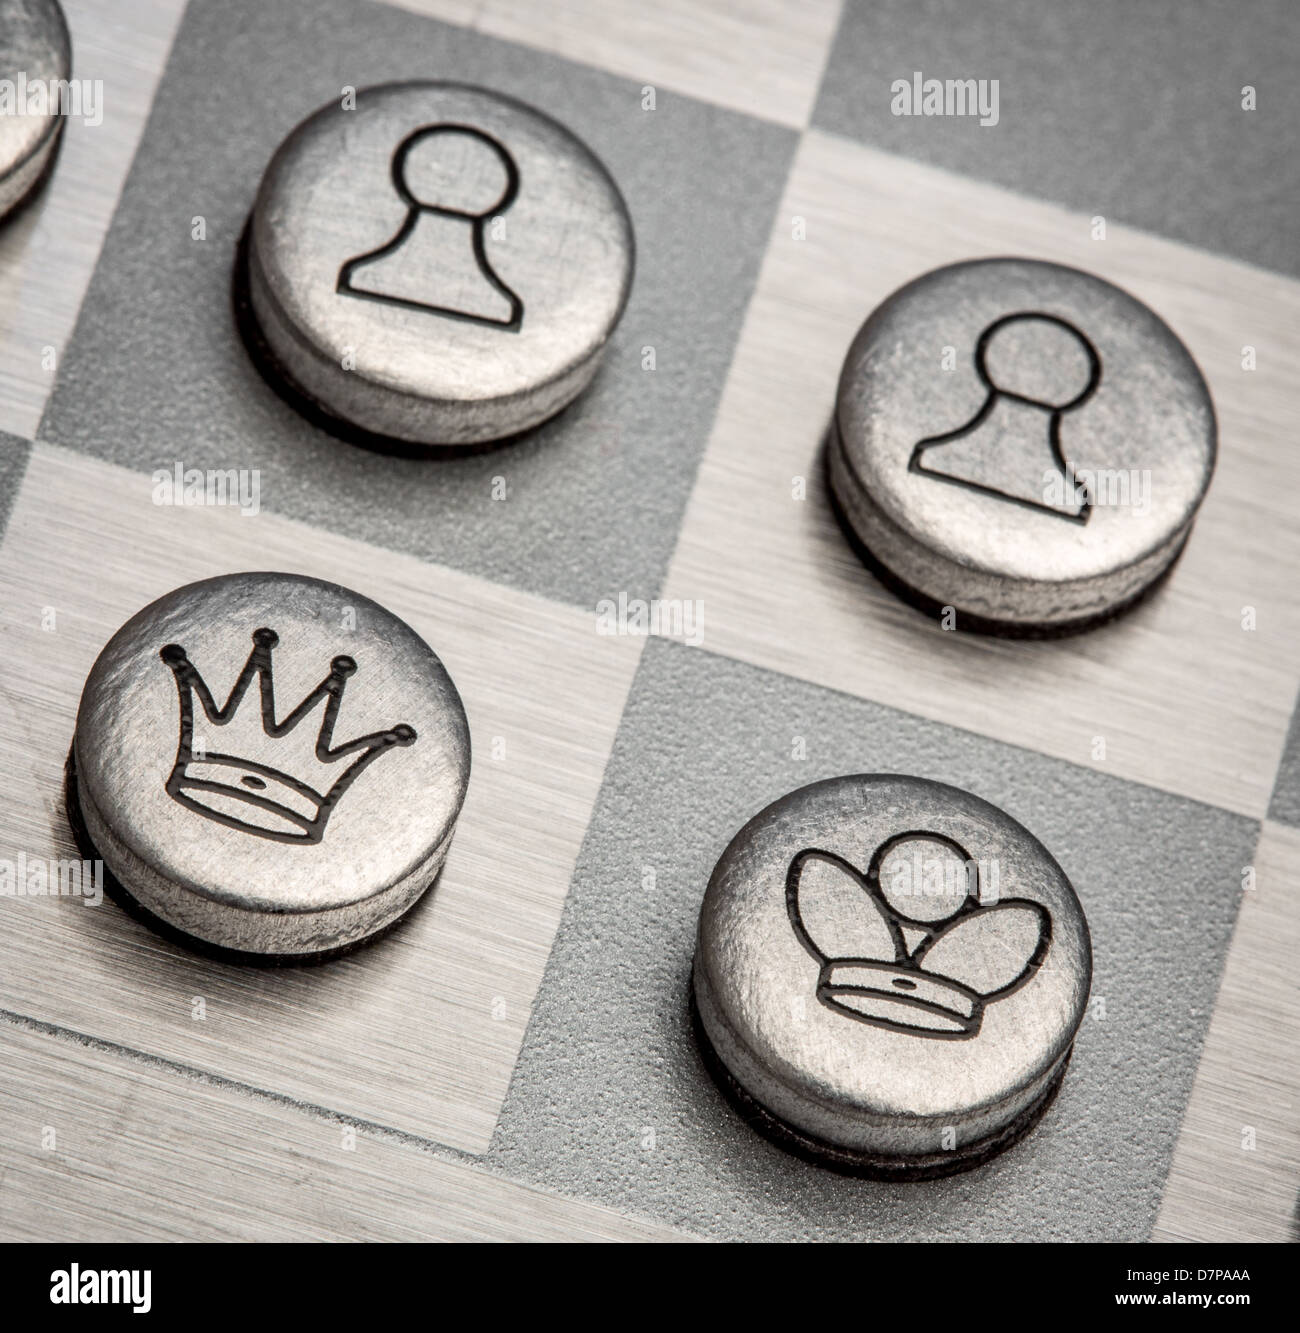 Photo of metal chess round shape. - Stock Image